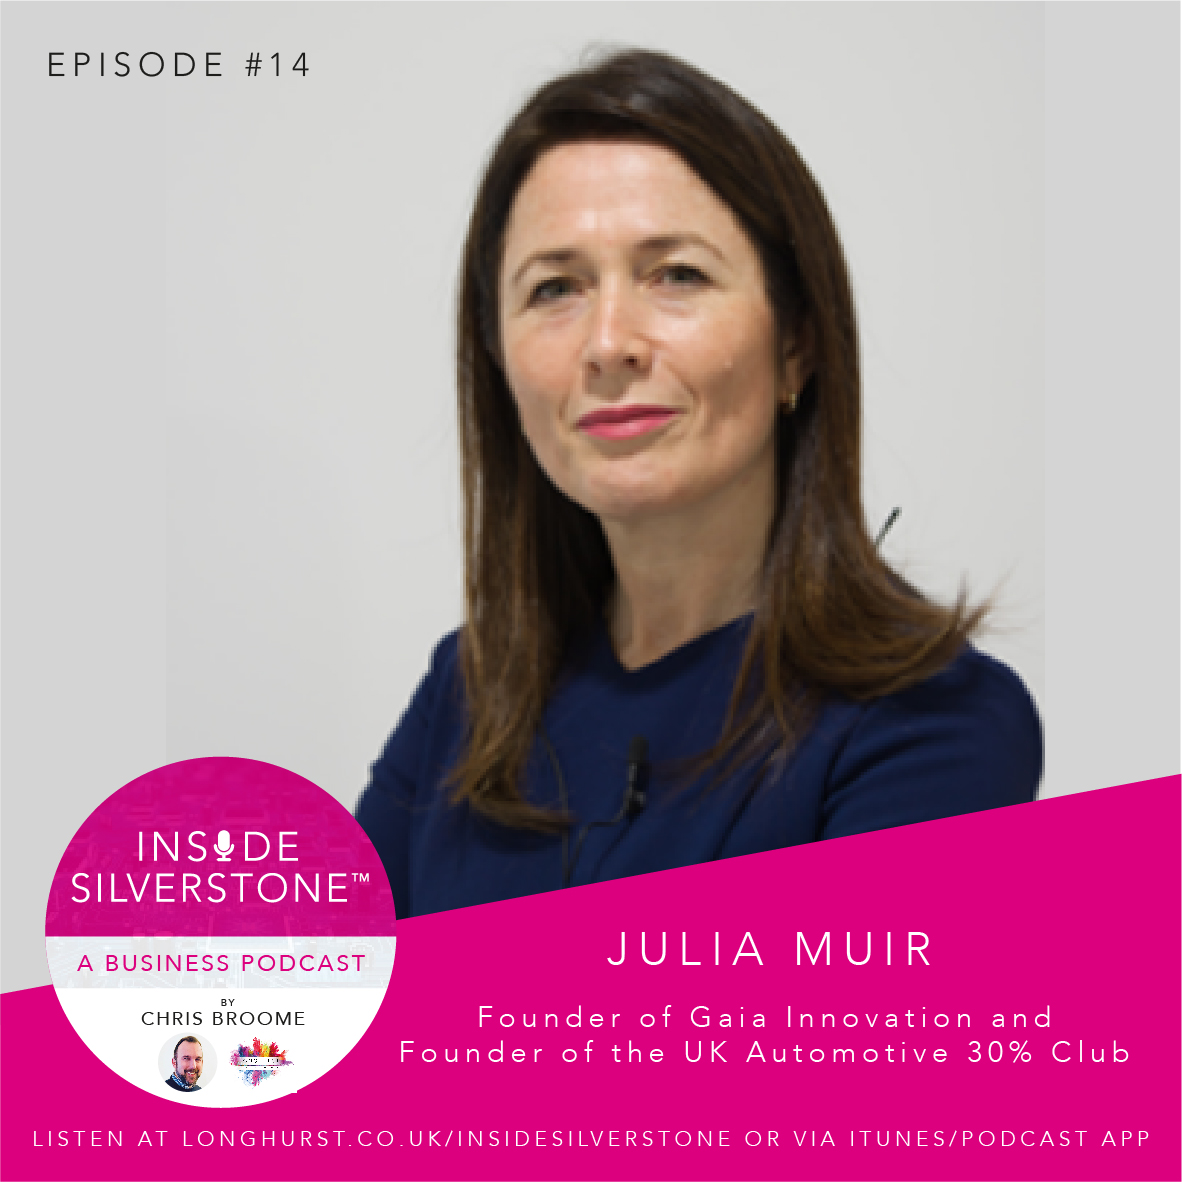 Julia Muir - Founder of Gaia Innovation, and Founder of the UK Automotive 30% Club